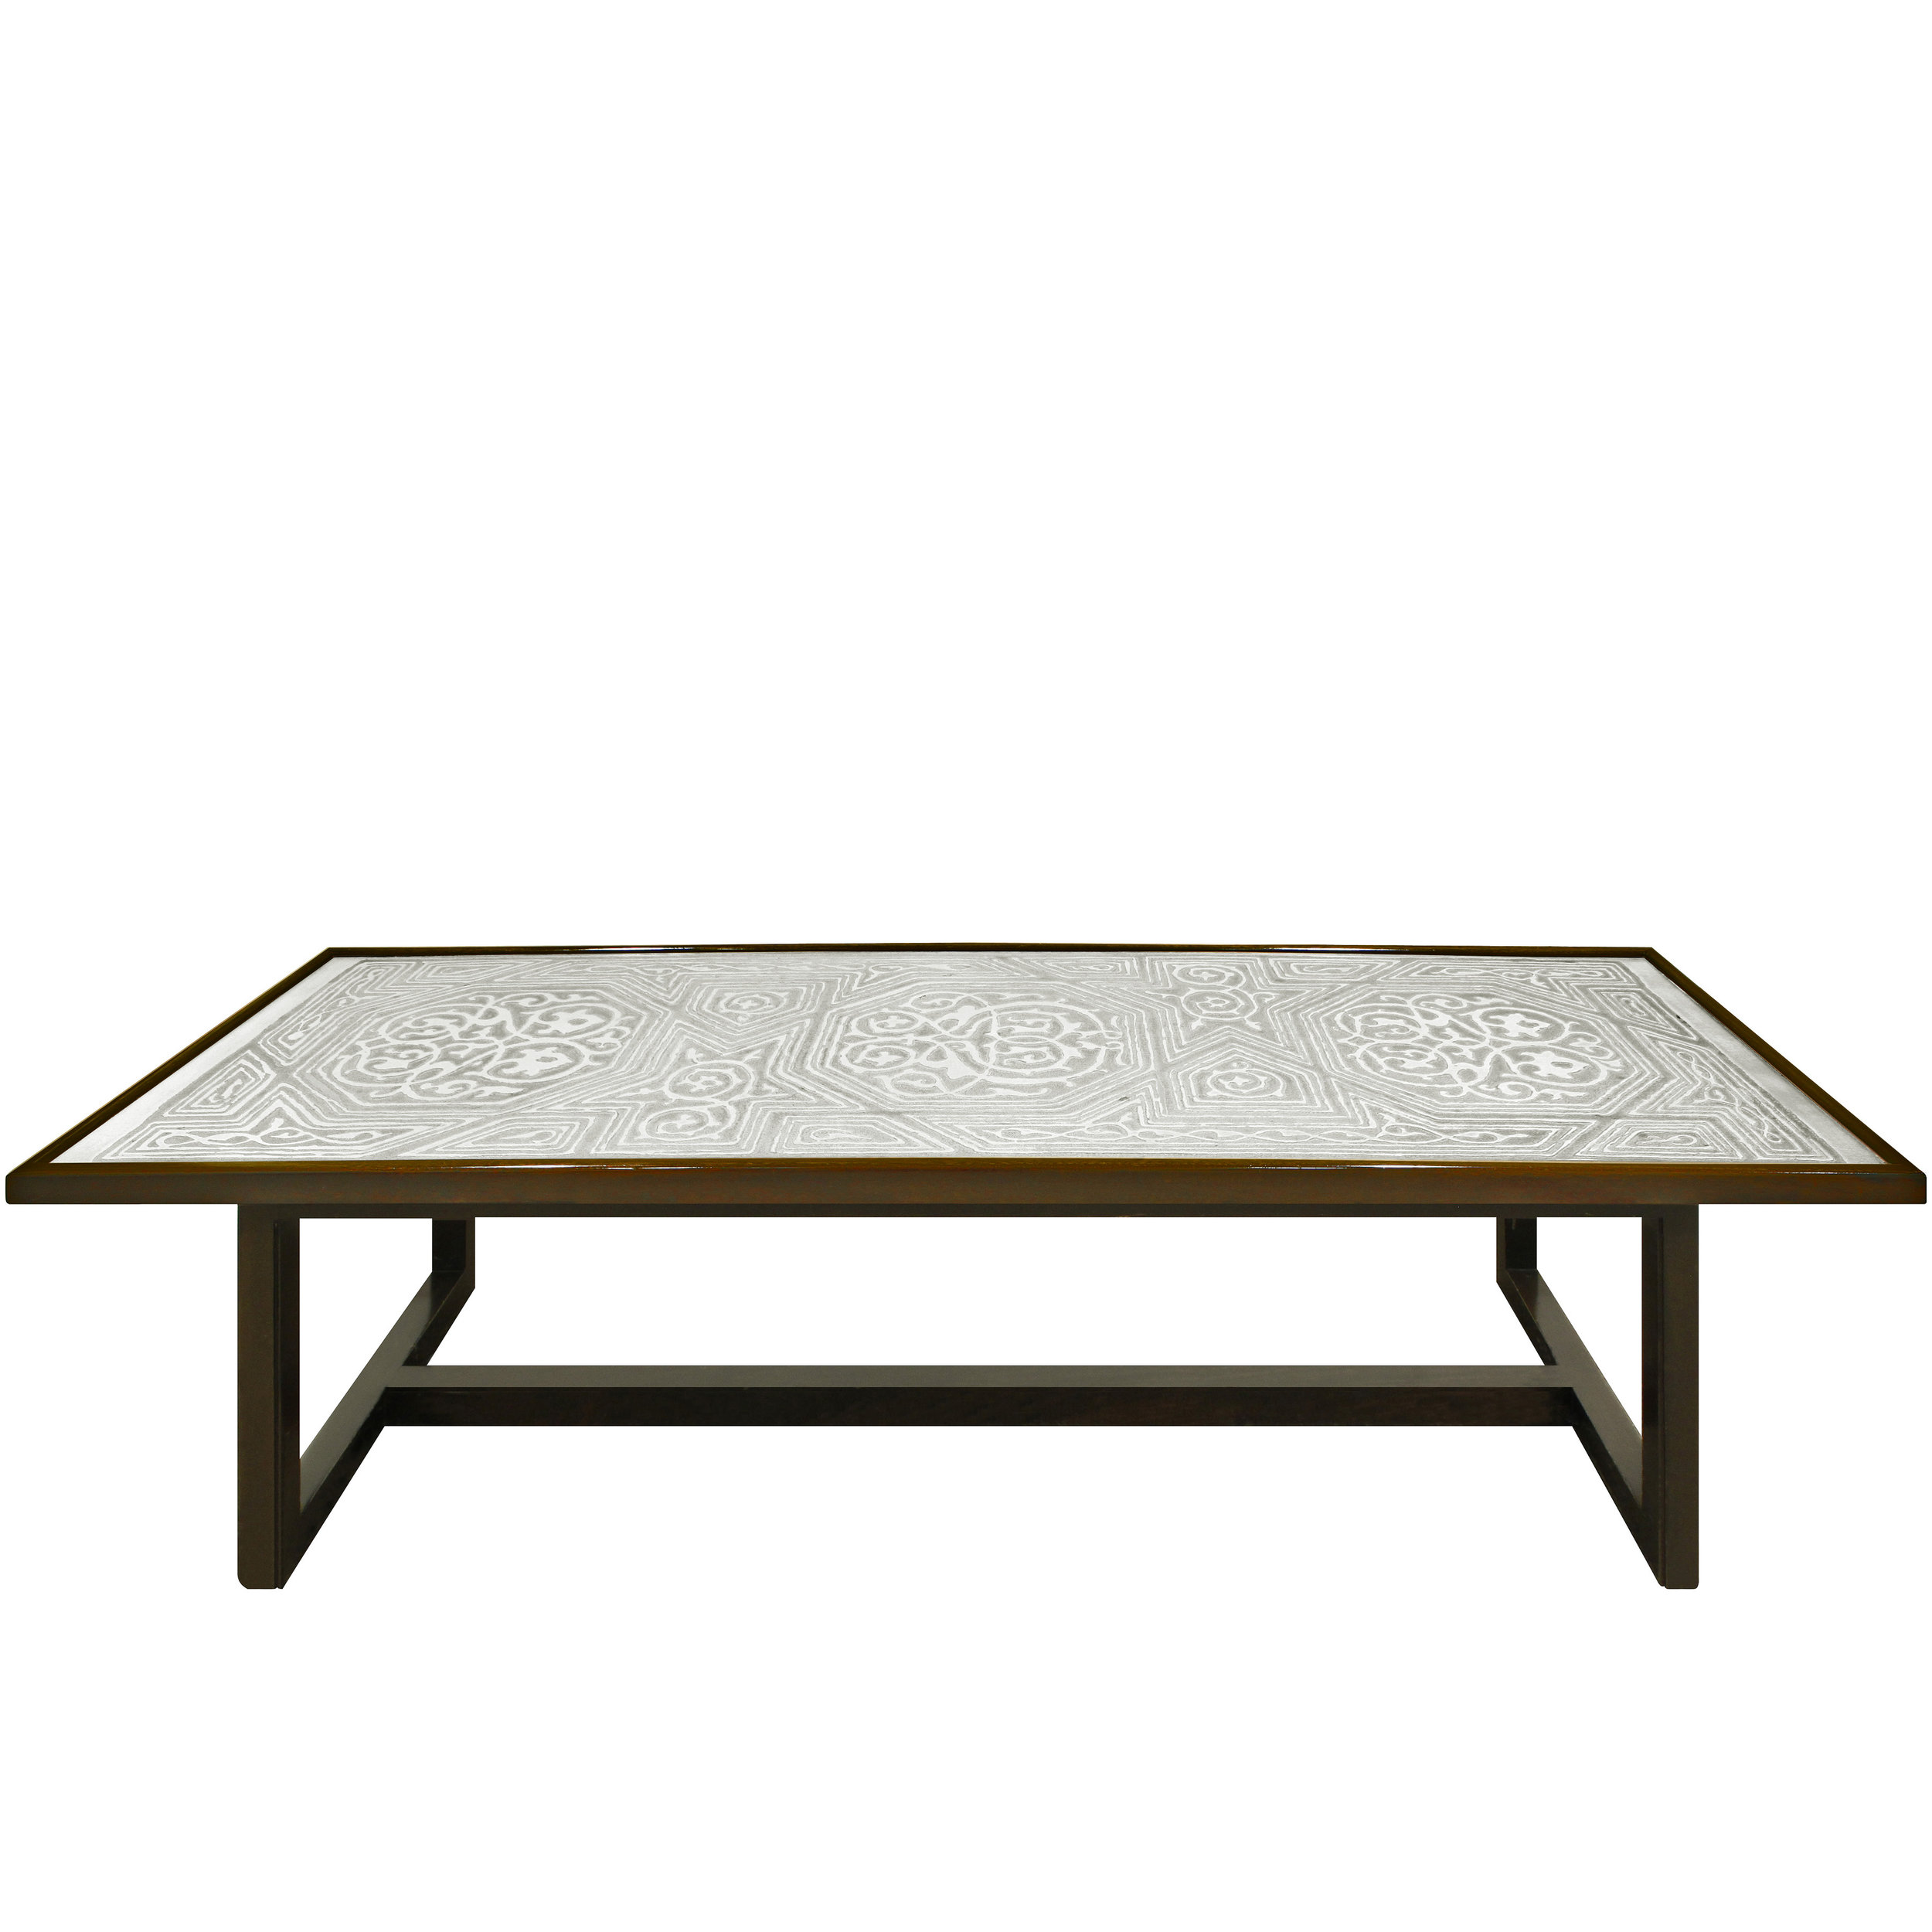 Probber 120 etched metal top coffeetable402 fnt.jpg